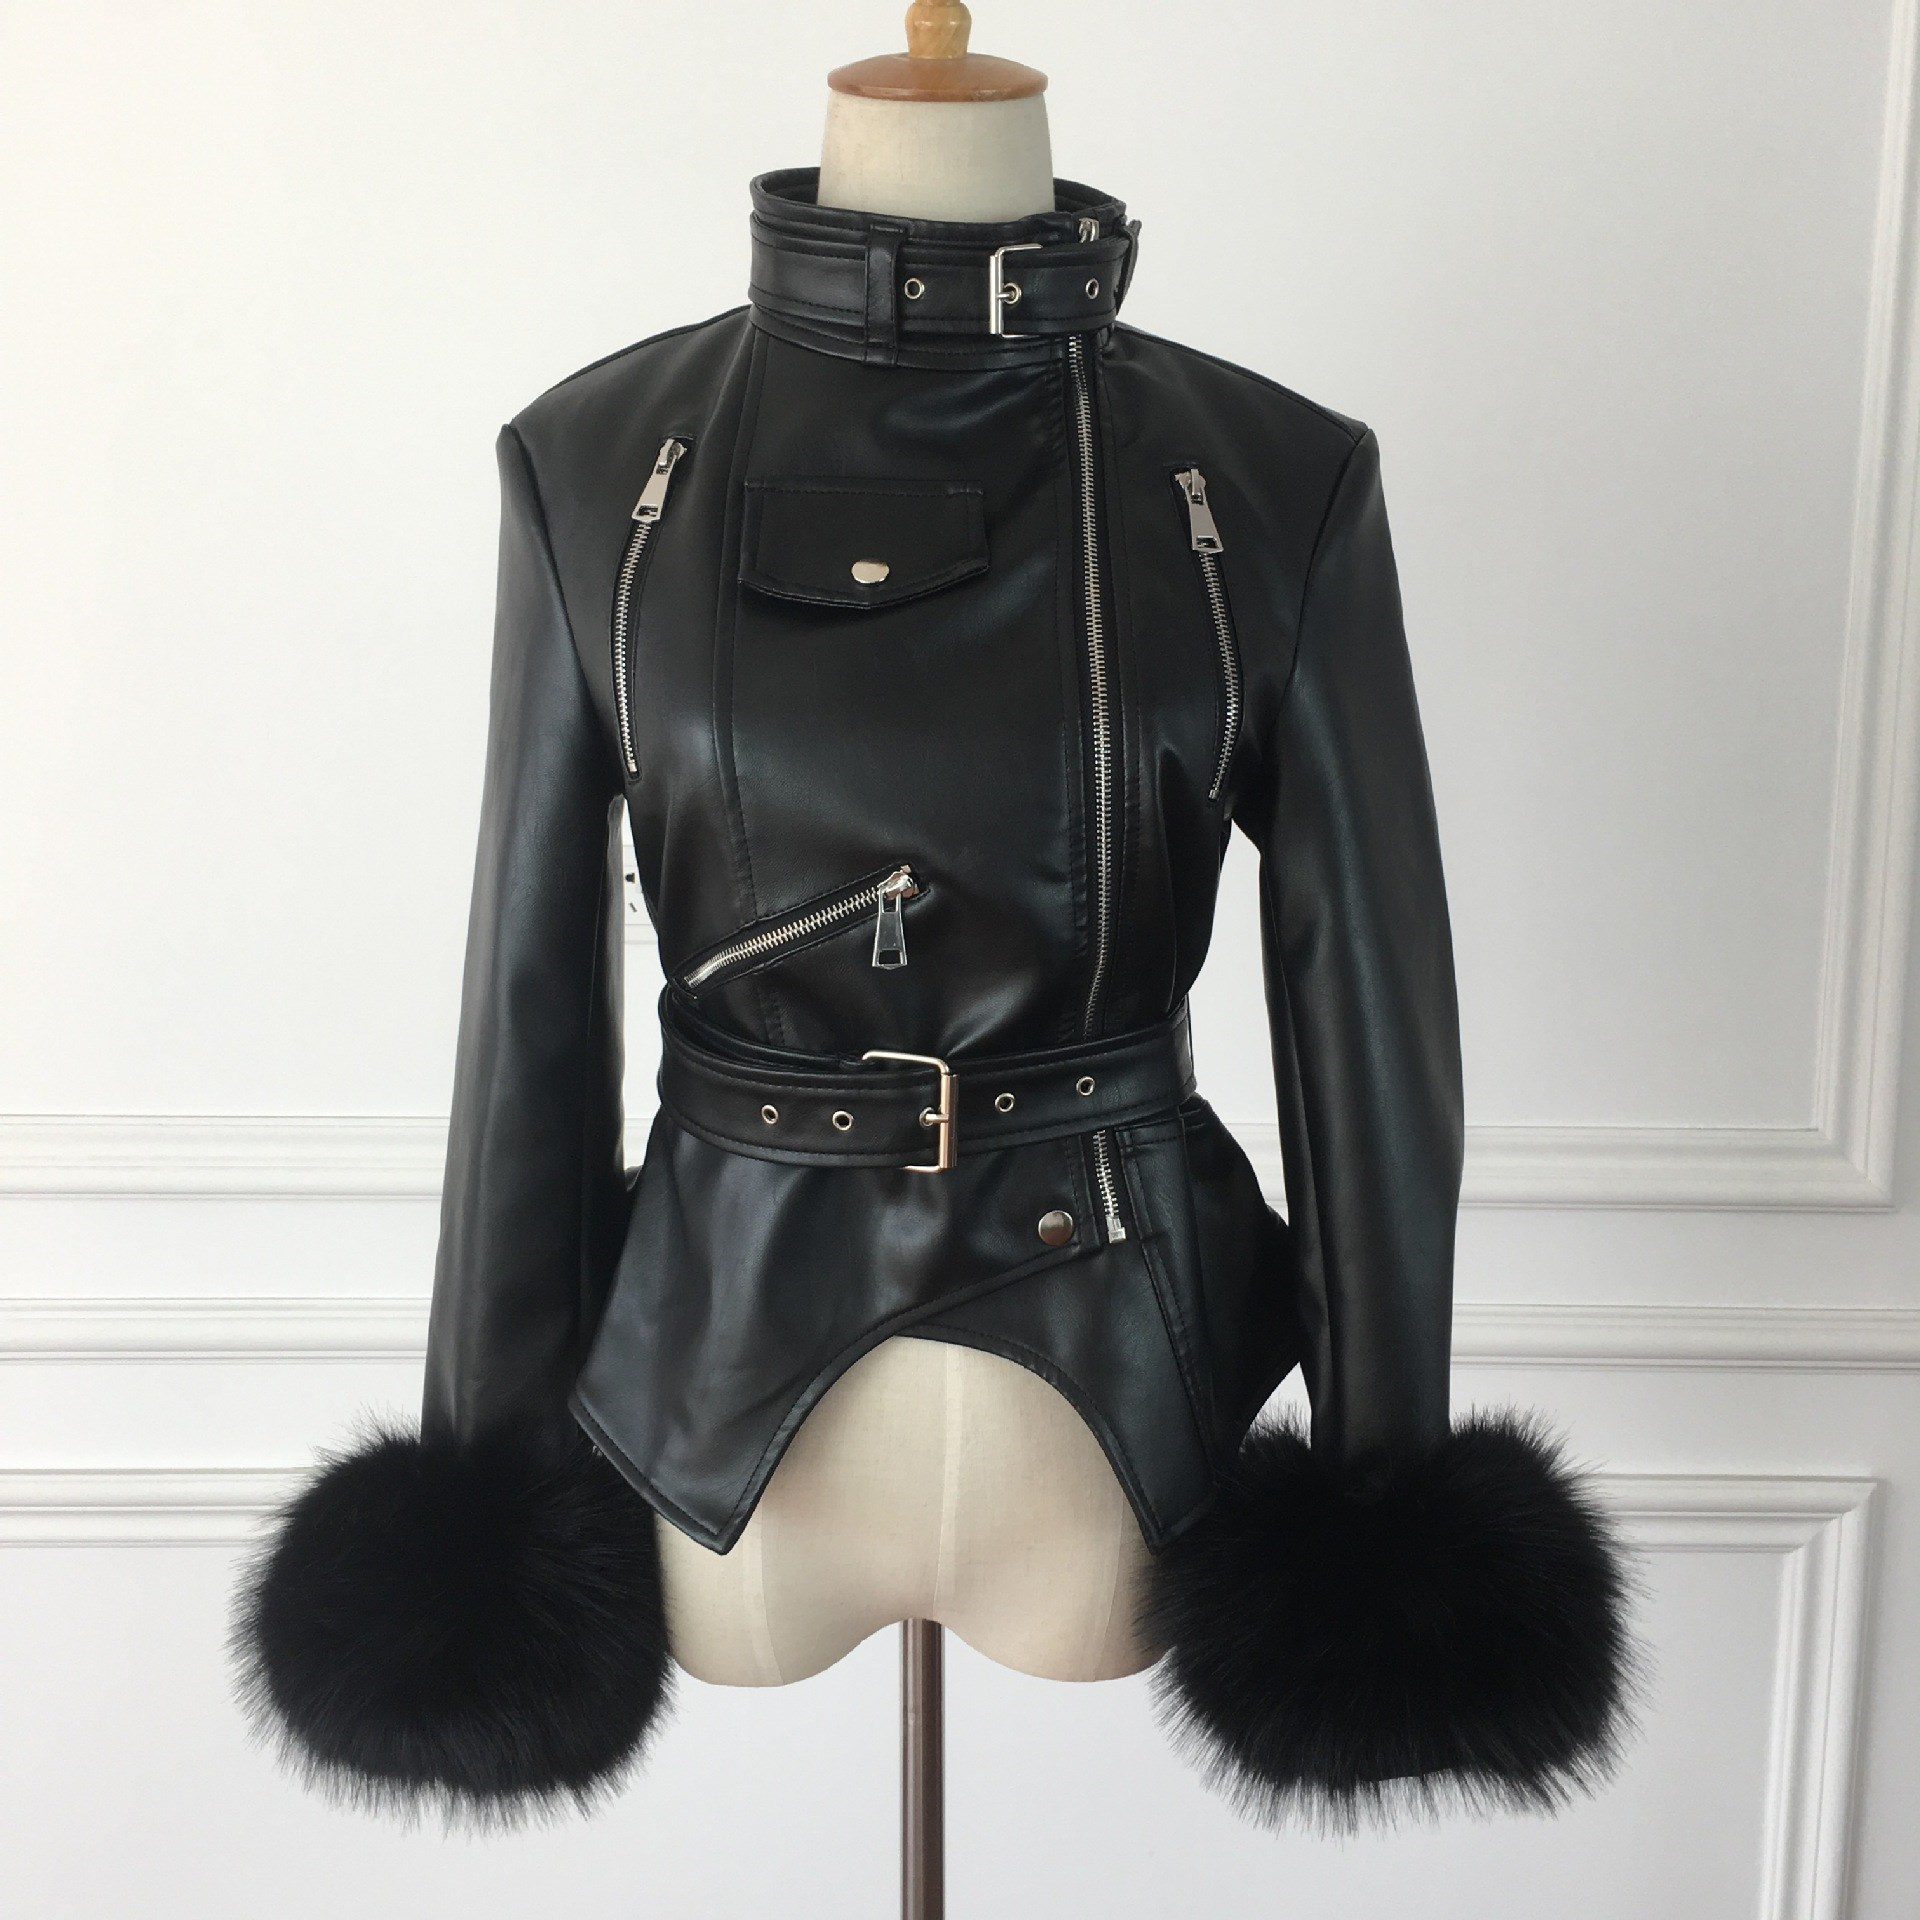 Winter Autumn Gothic Faux   Leather   Coats Casual Fluffy Sleeve Motorcycle Jacket Black Outerwear PU Jacket